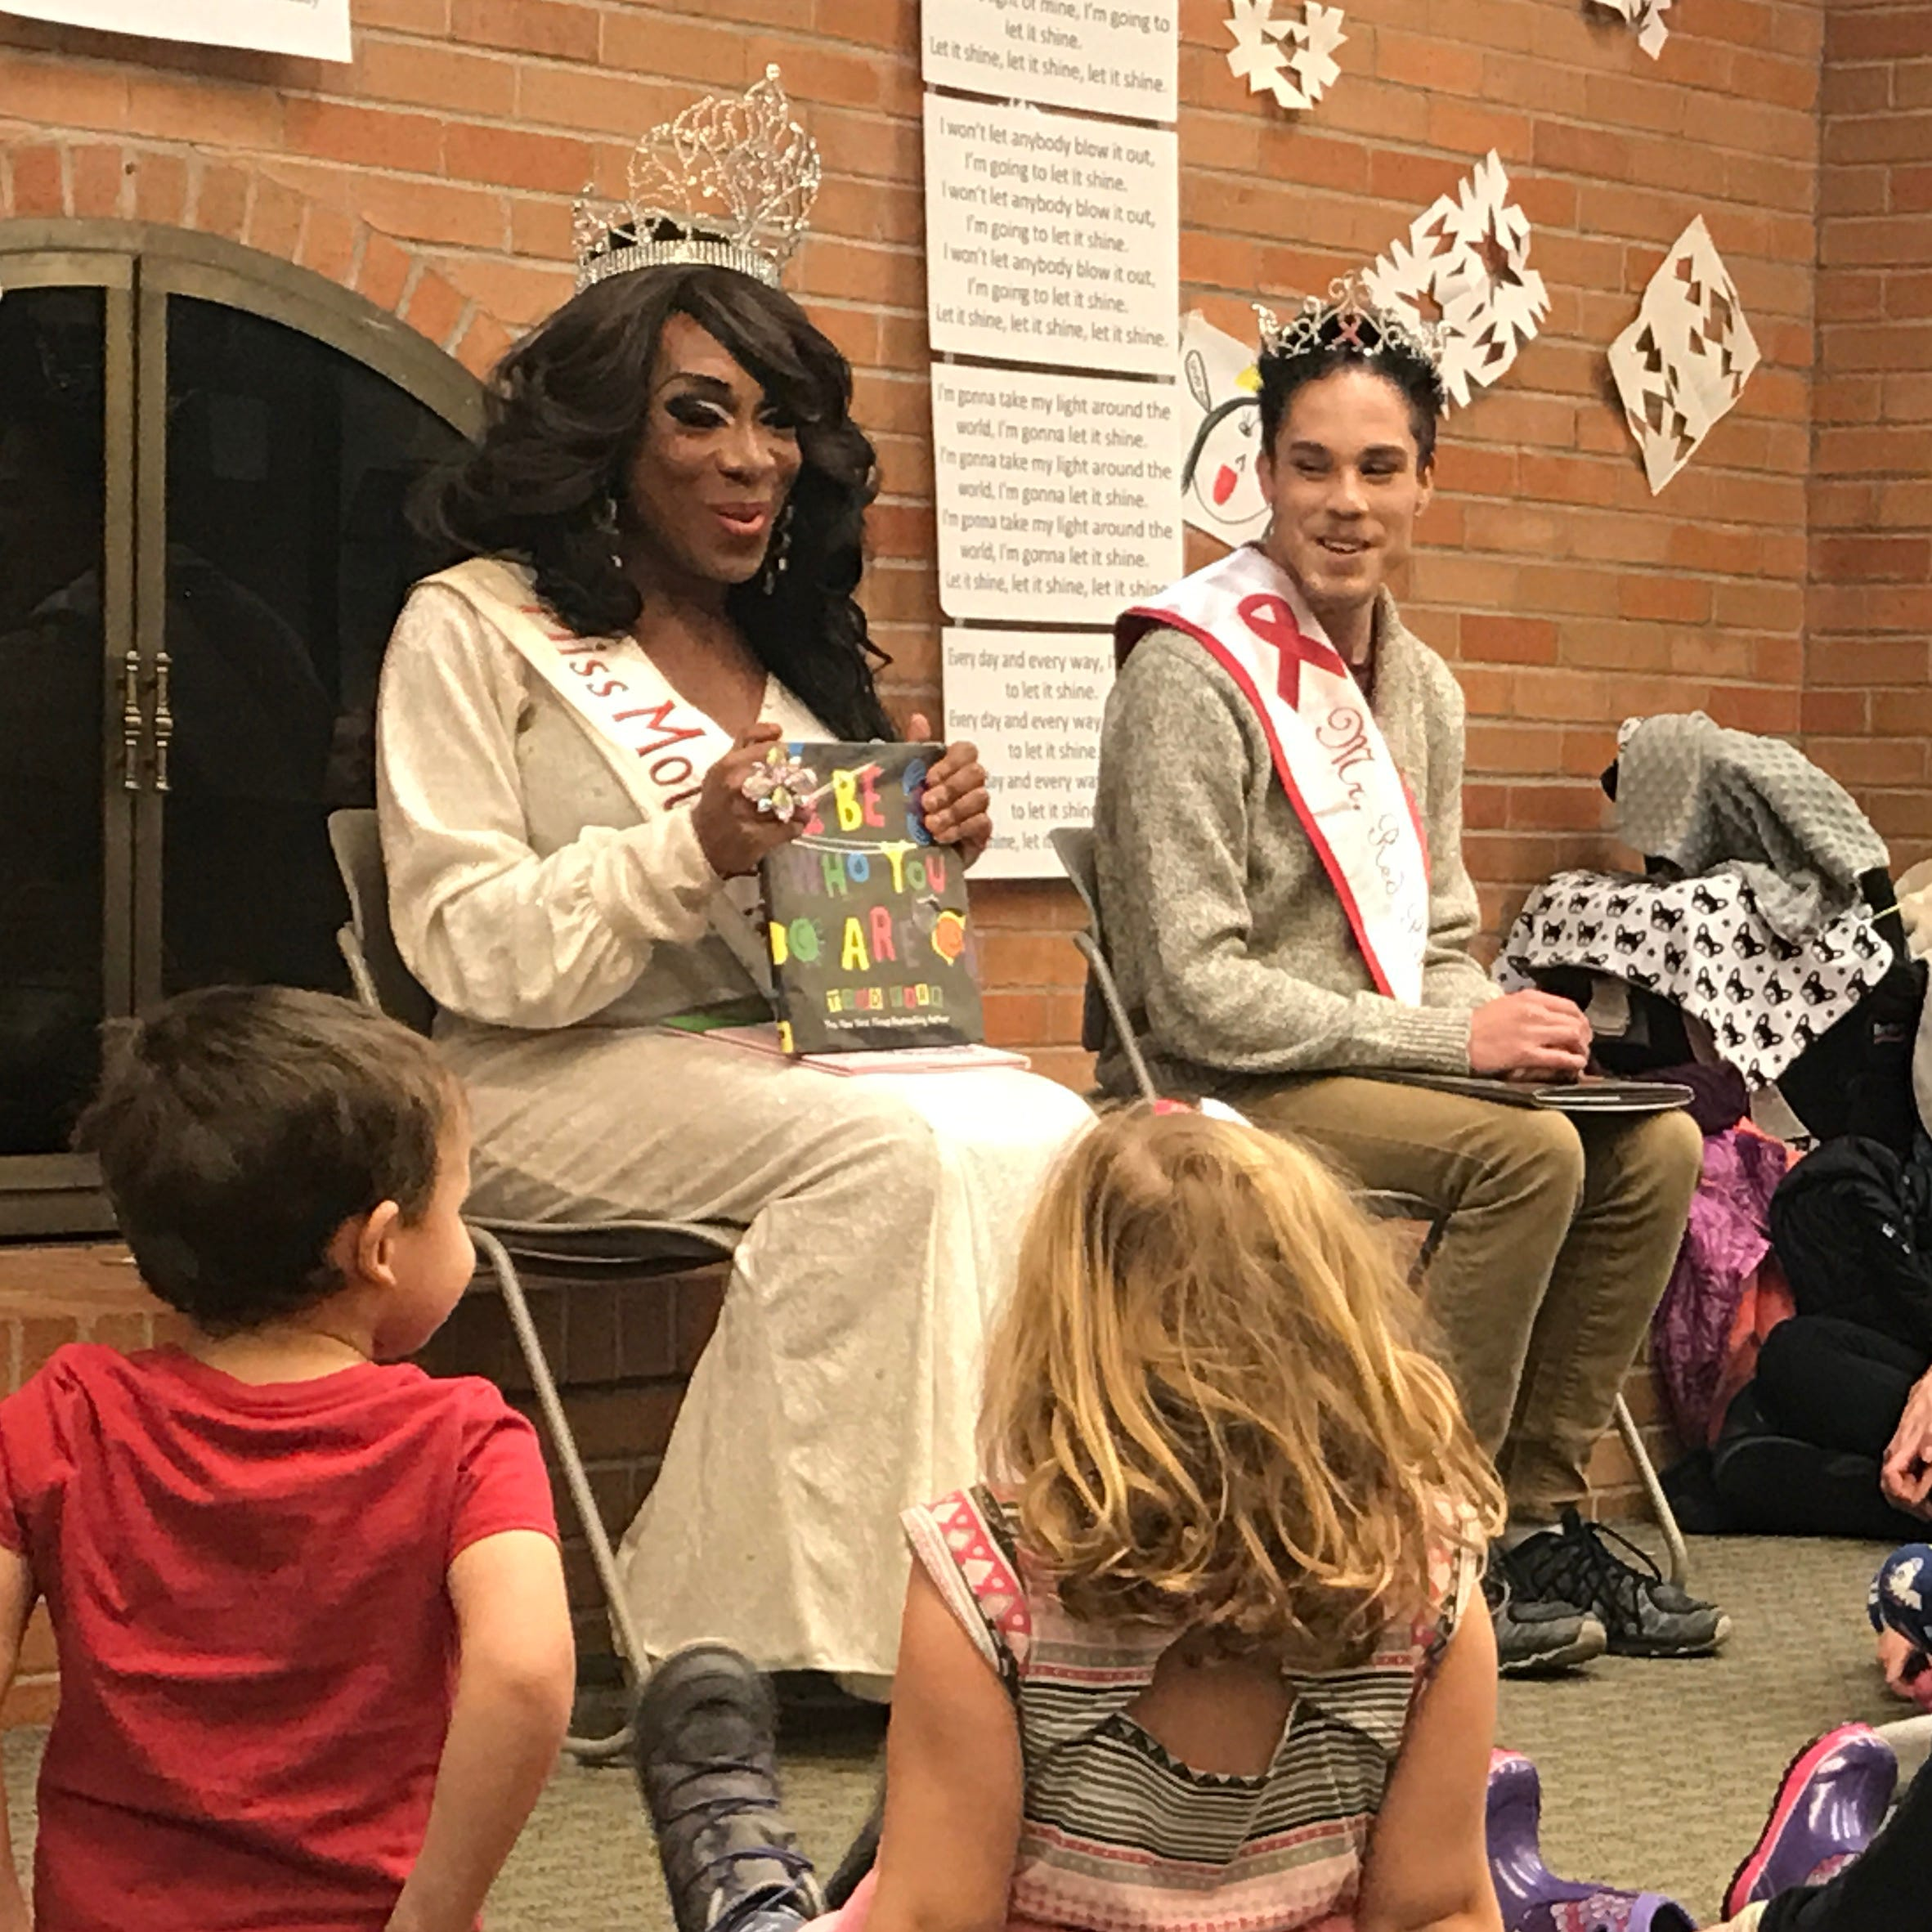 Huntington Woods Mayor on Drag Queen Storytime: Library events are a local issue